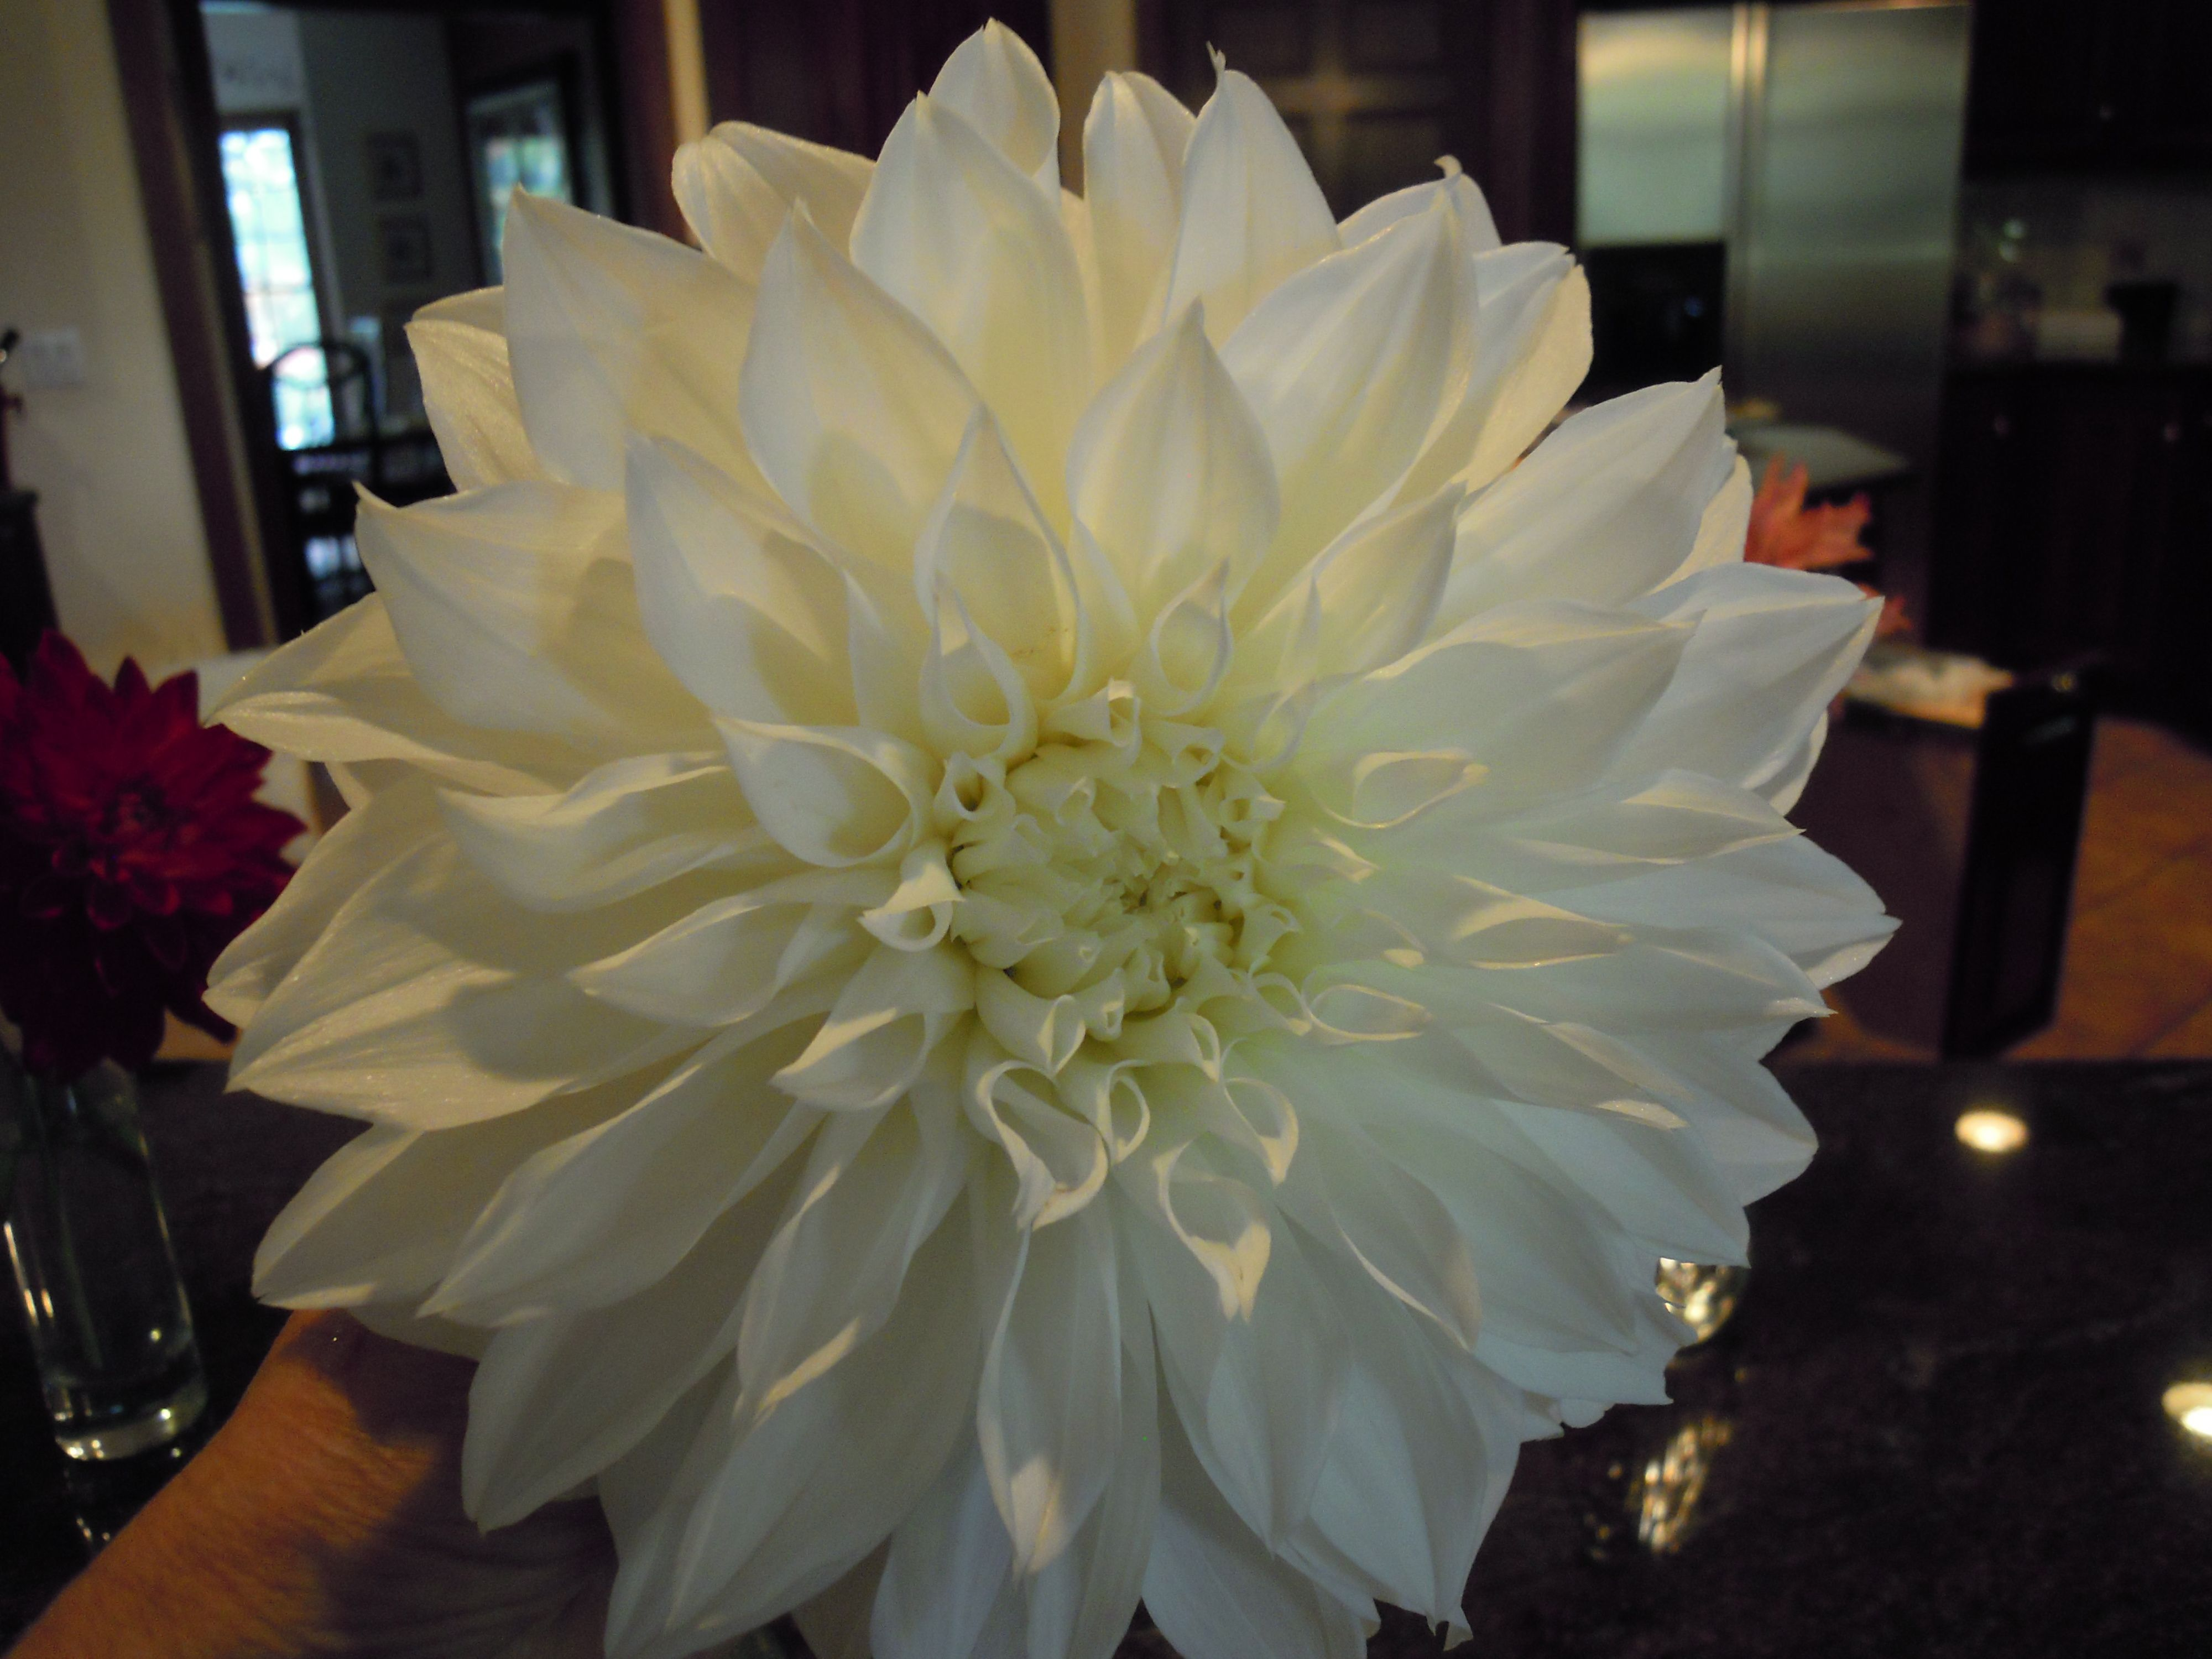 Award winning dahlia. They're fun to grow. What a great result.